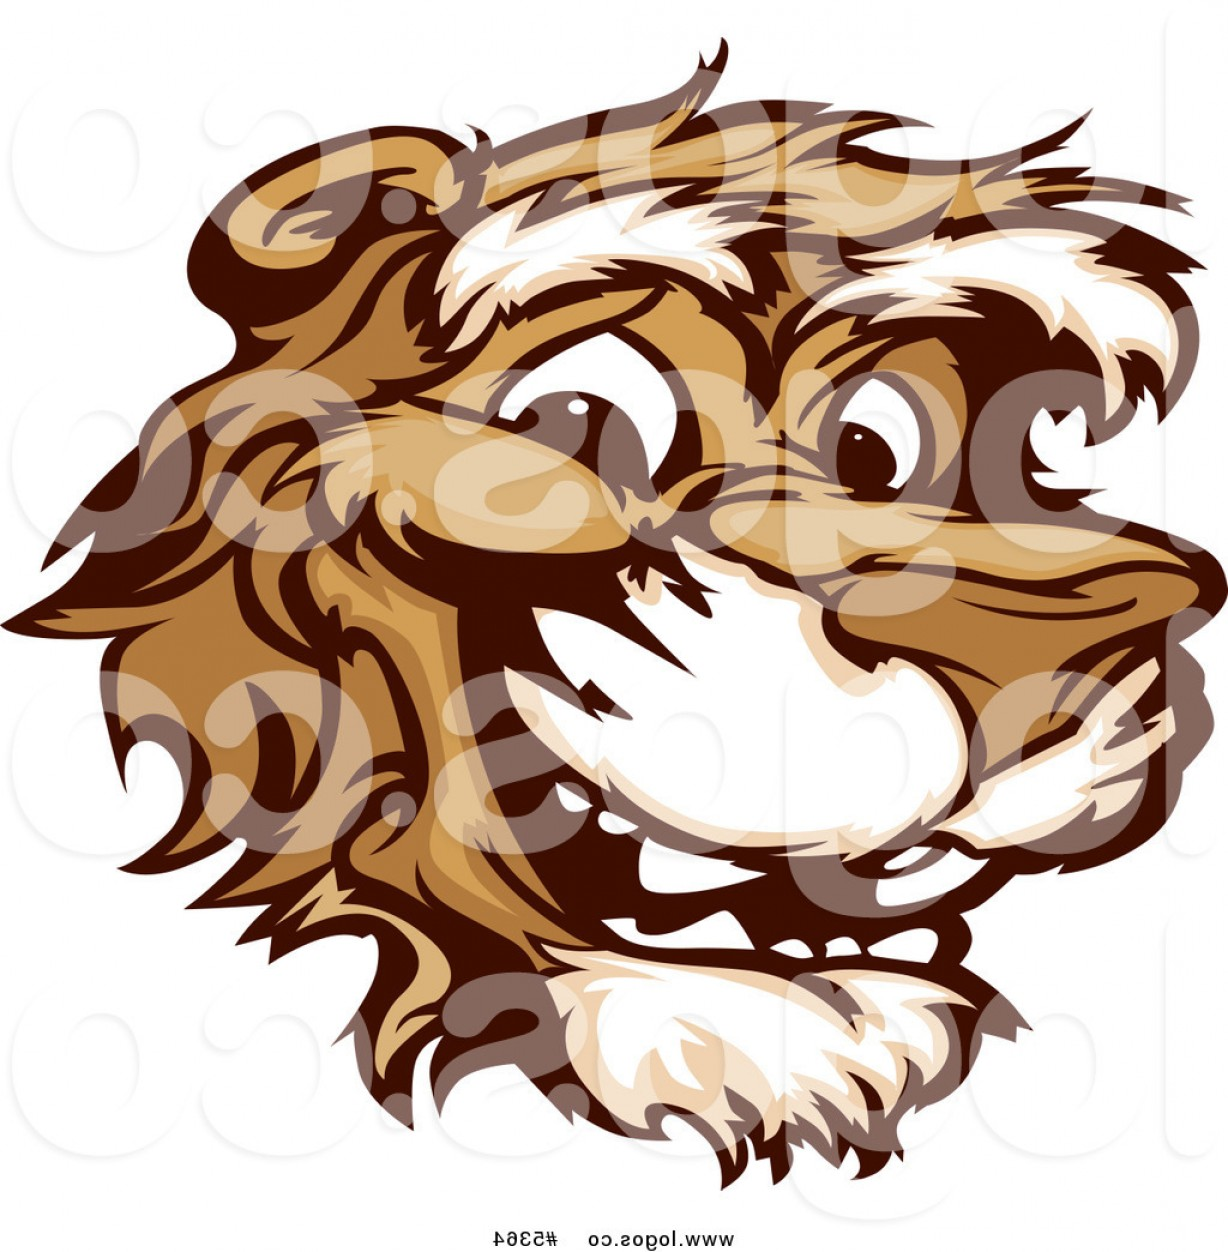 Cougar Logo Vector: Royalty Free Vector Of A Logo Of A Smiling Happy Cougar Face By Chromaco